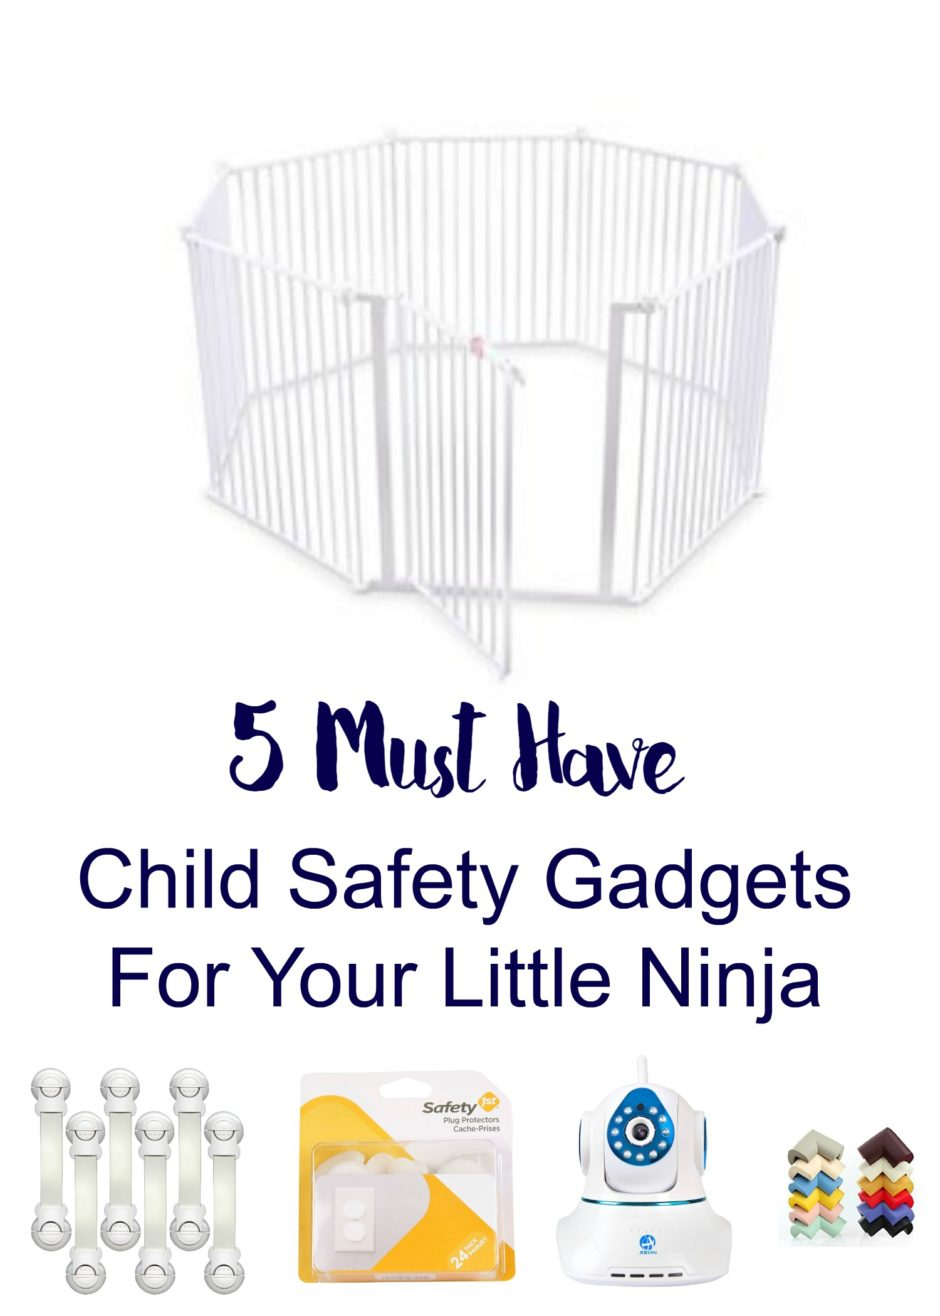 5 Must Have Child Safety Gadgets For Your Little Ninja